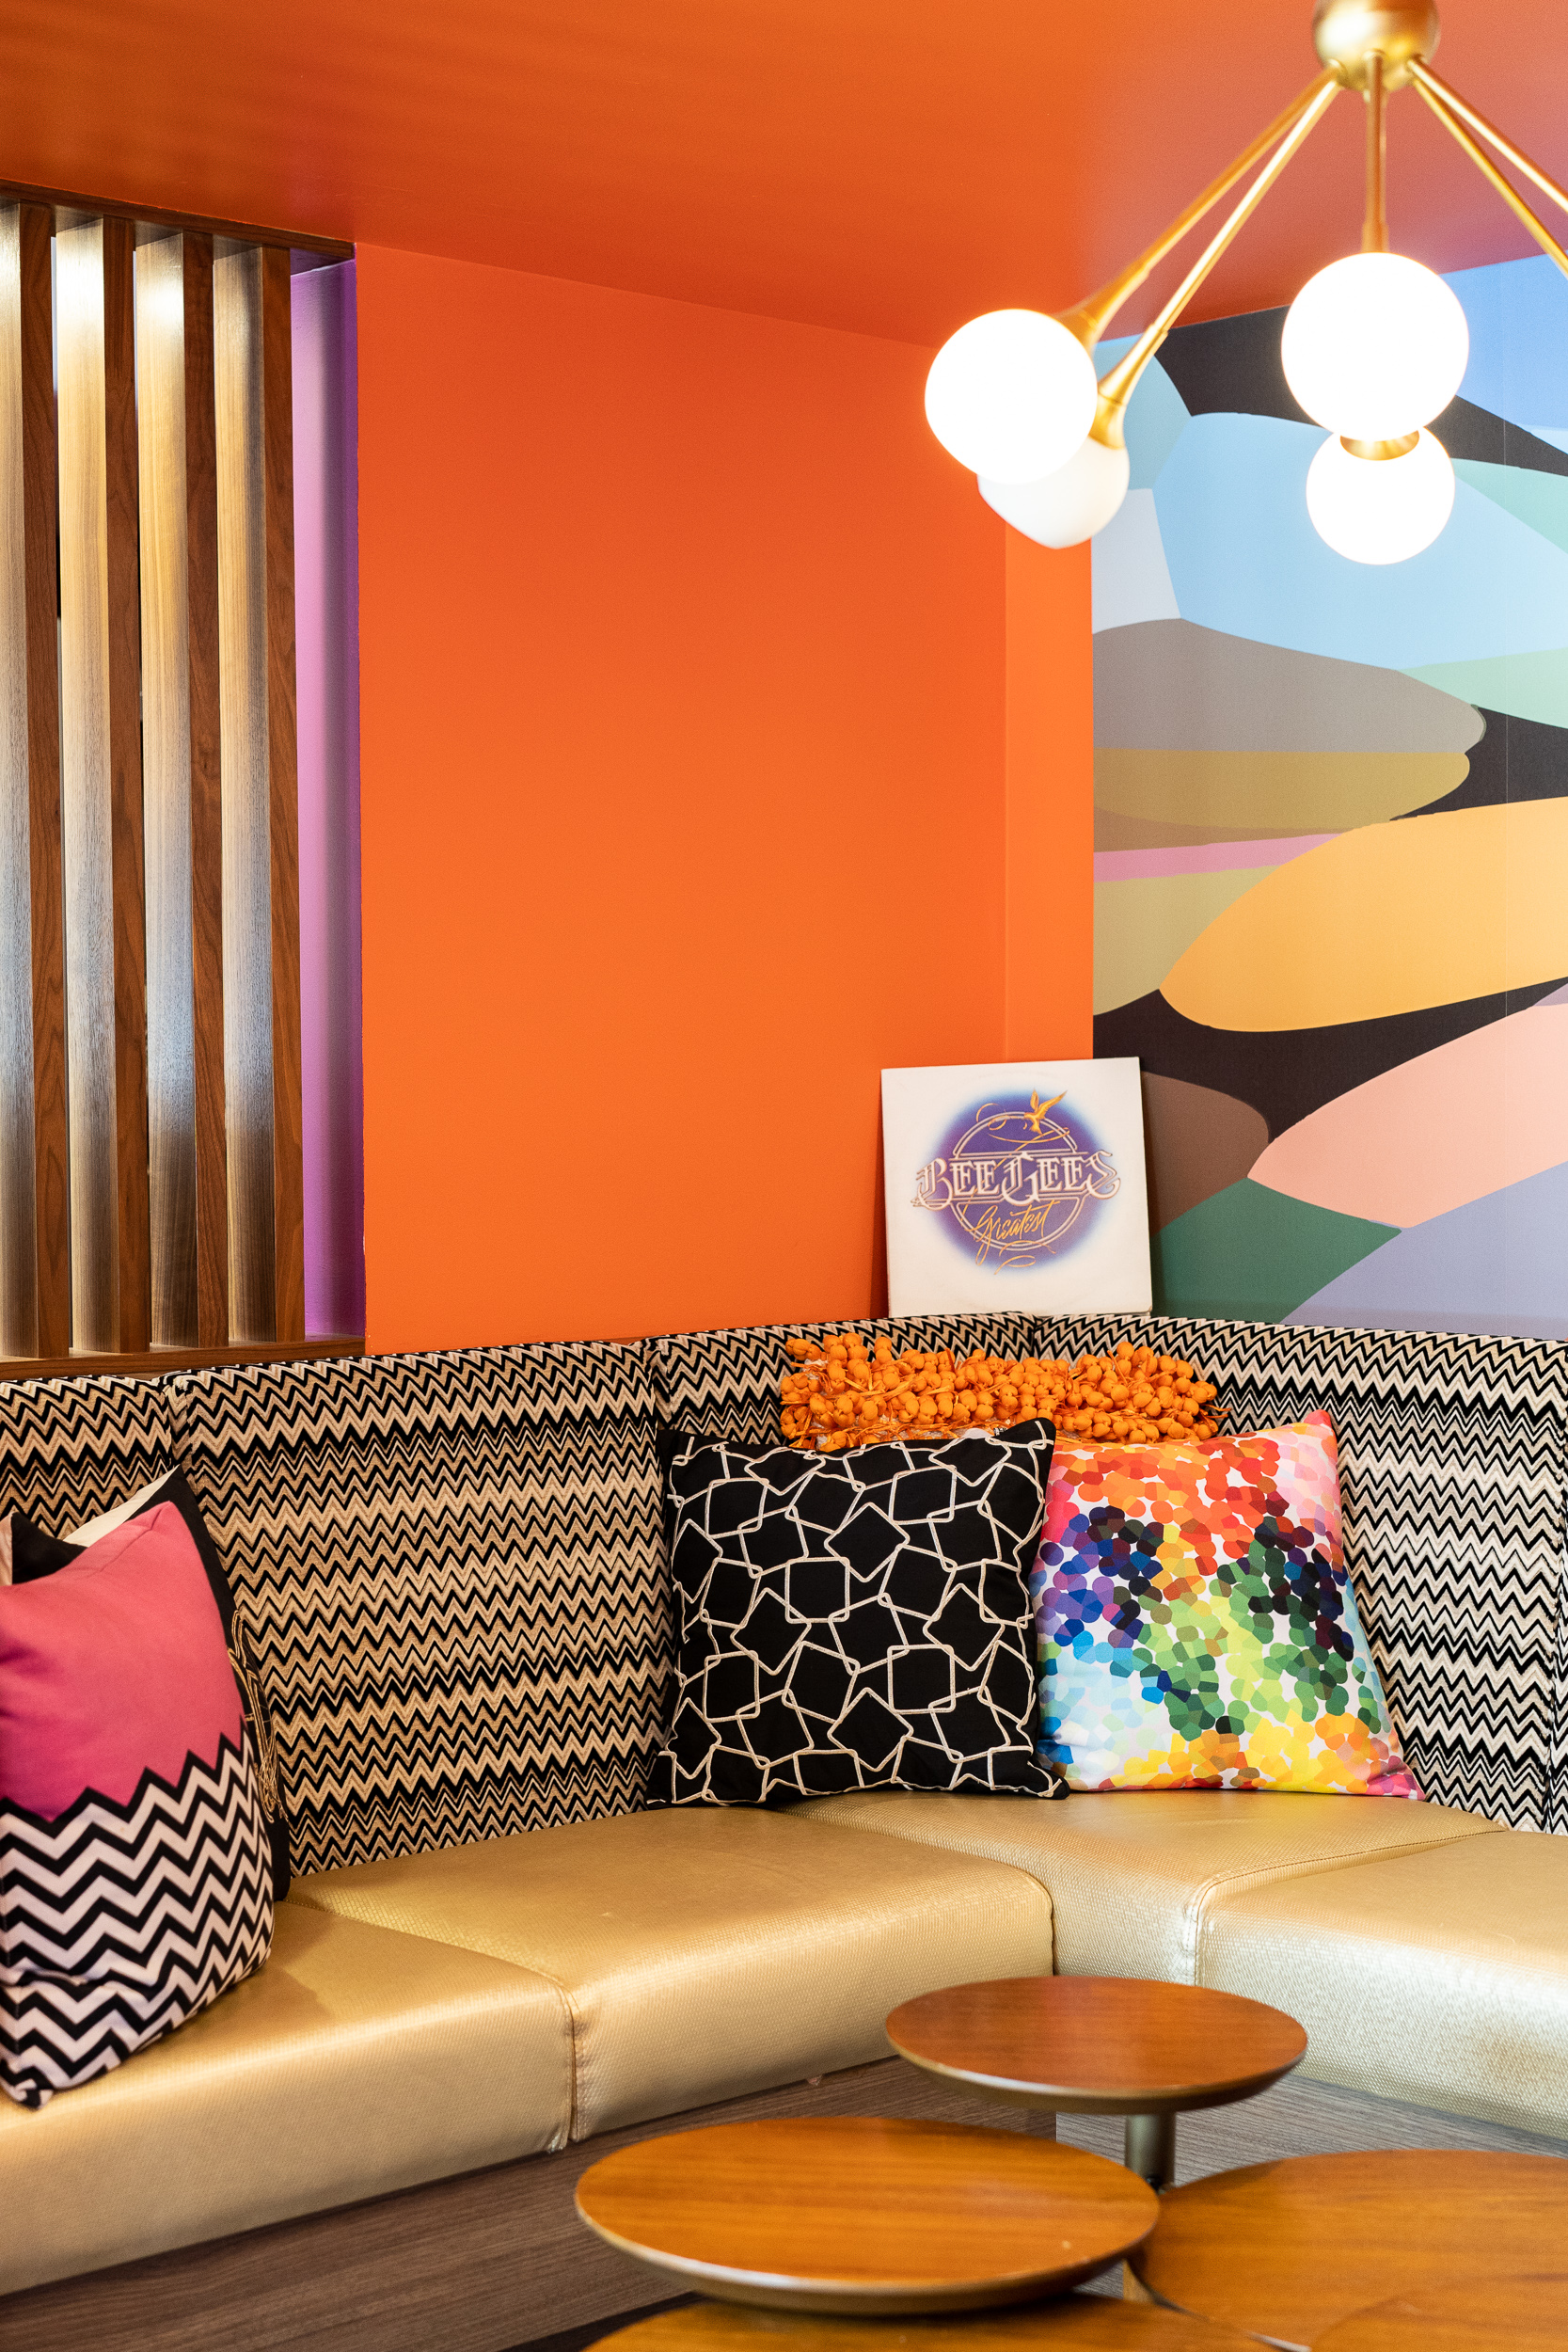 Retro lounge in the lobby.